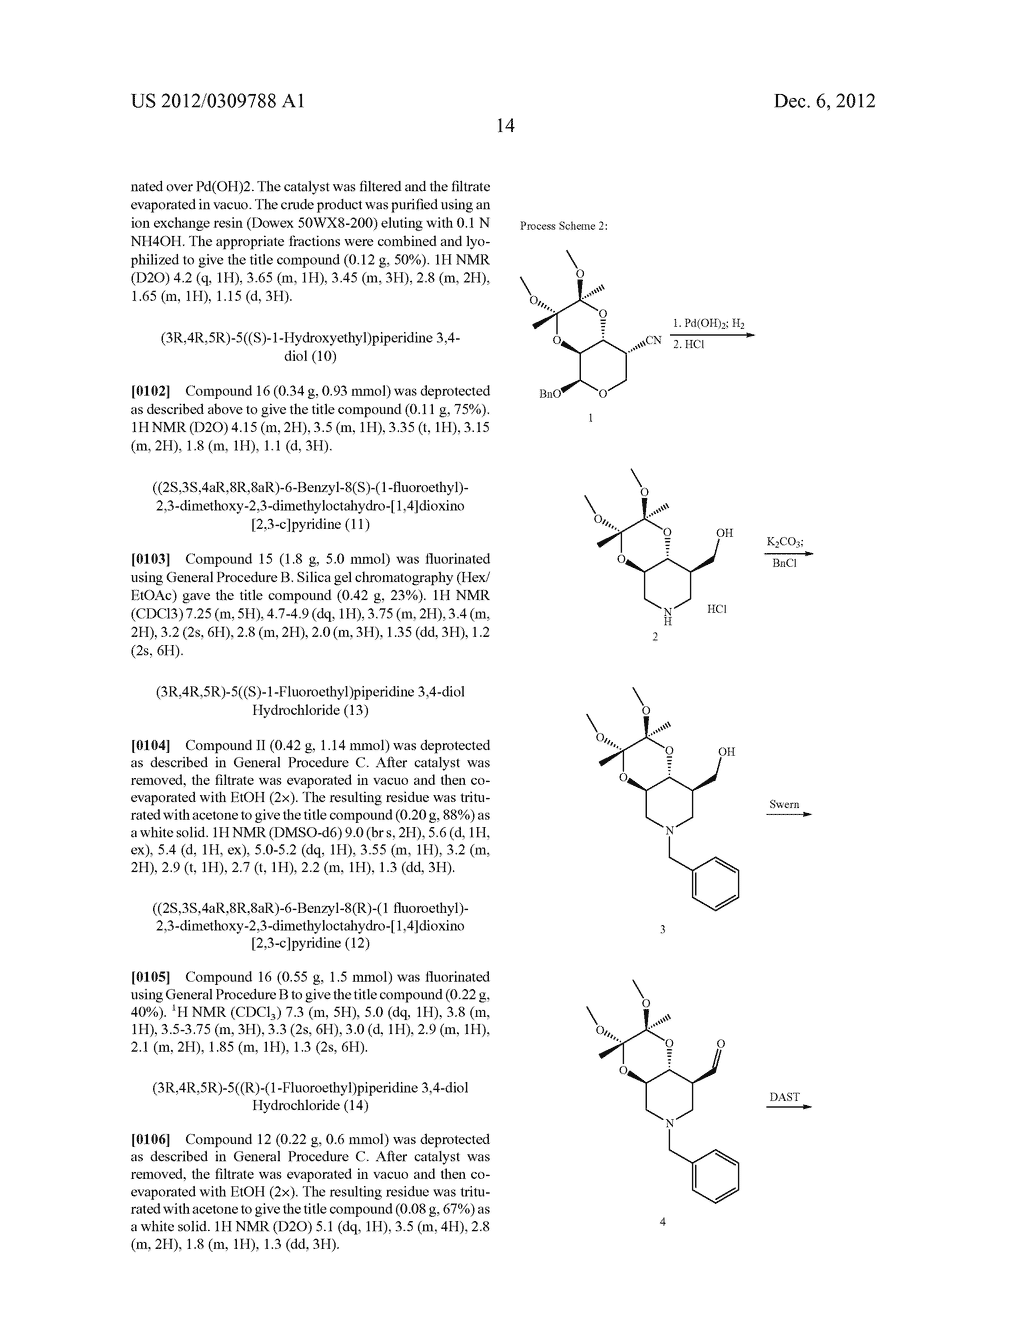 Method for Treating Alzheimer's Disease Using Pharmacological Chaperones     To Increase The Activity of Gangliosidases - diagram, schematic, and image 23